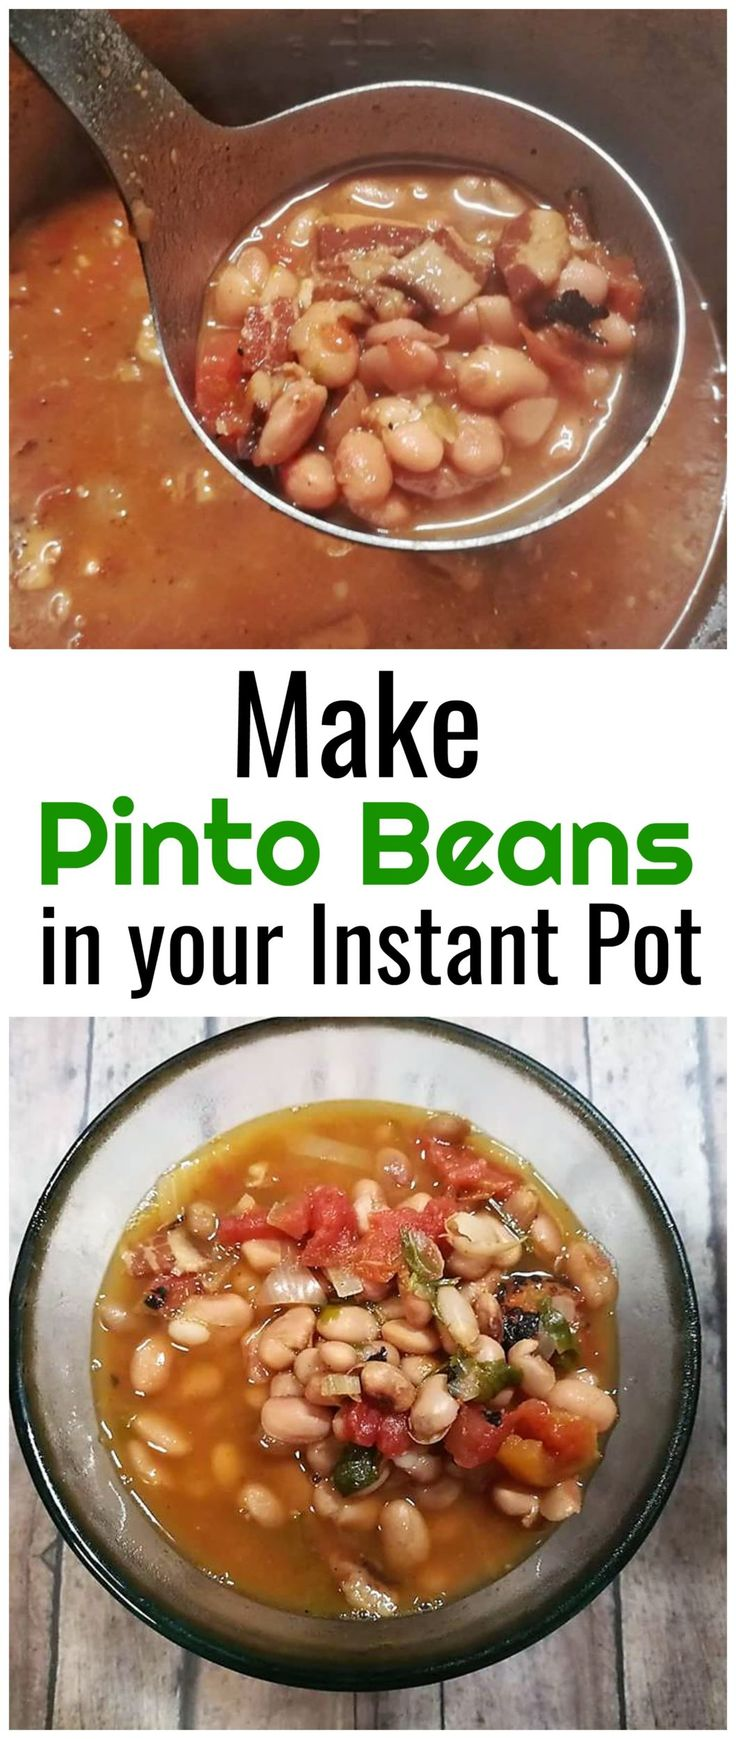 My favorite cold weather meal is pinto beans with cornbread So I am going to share with you today how I did Pinto Beans in Instant Pot.